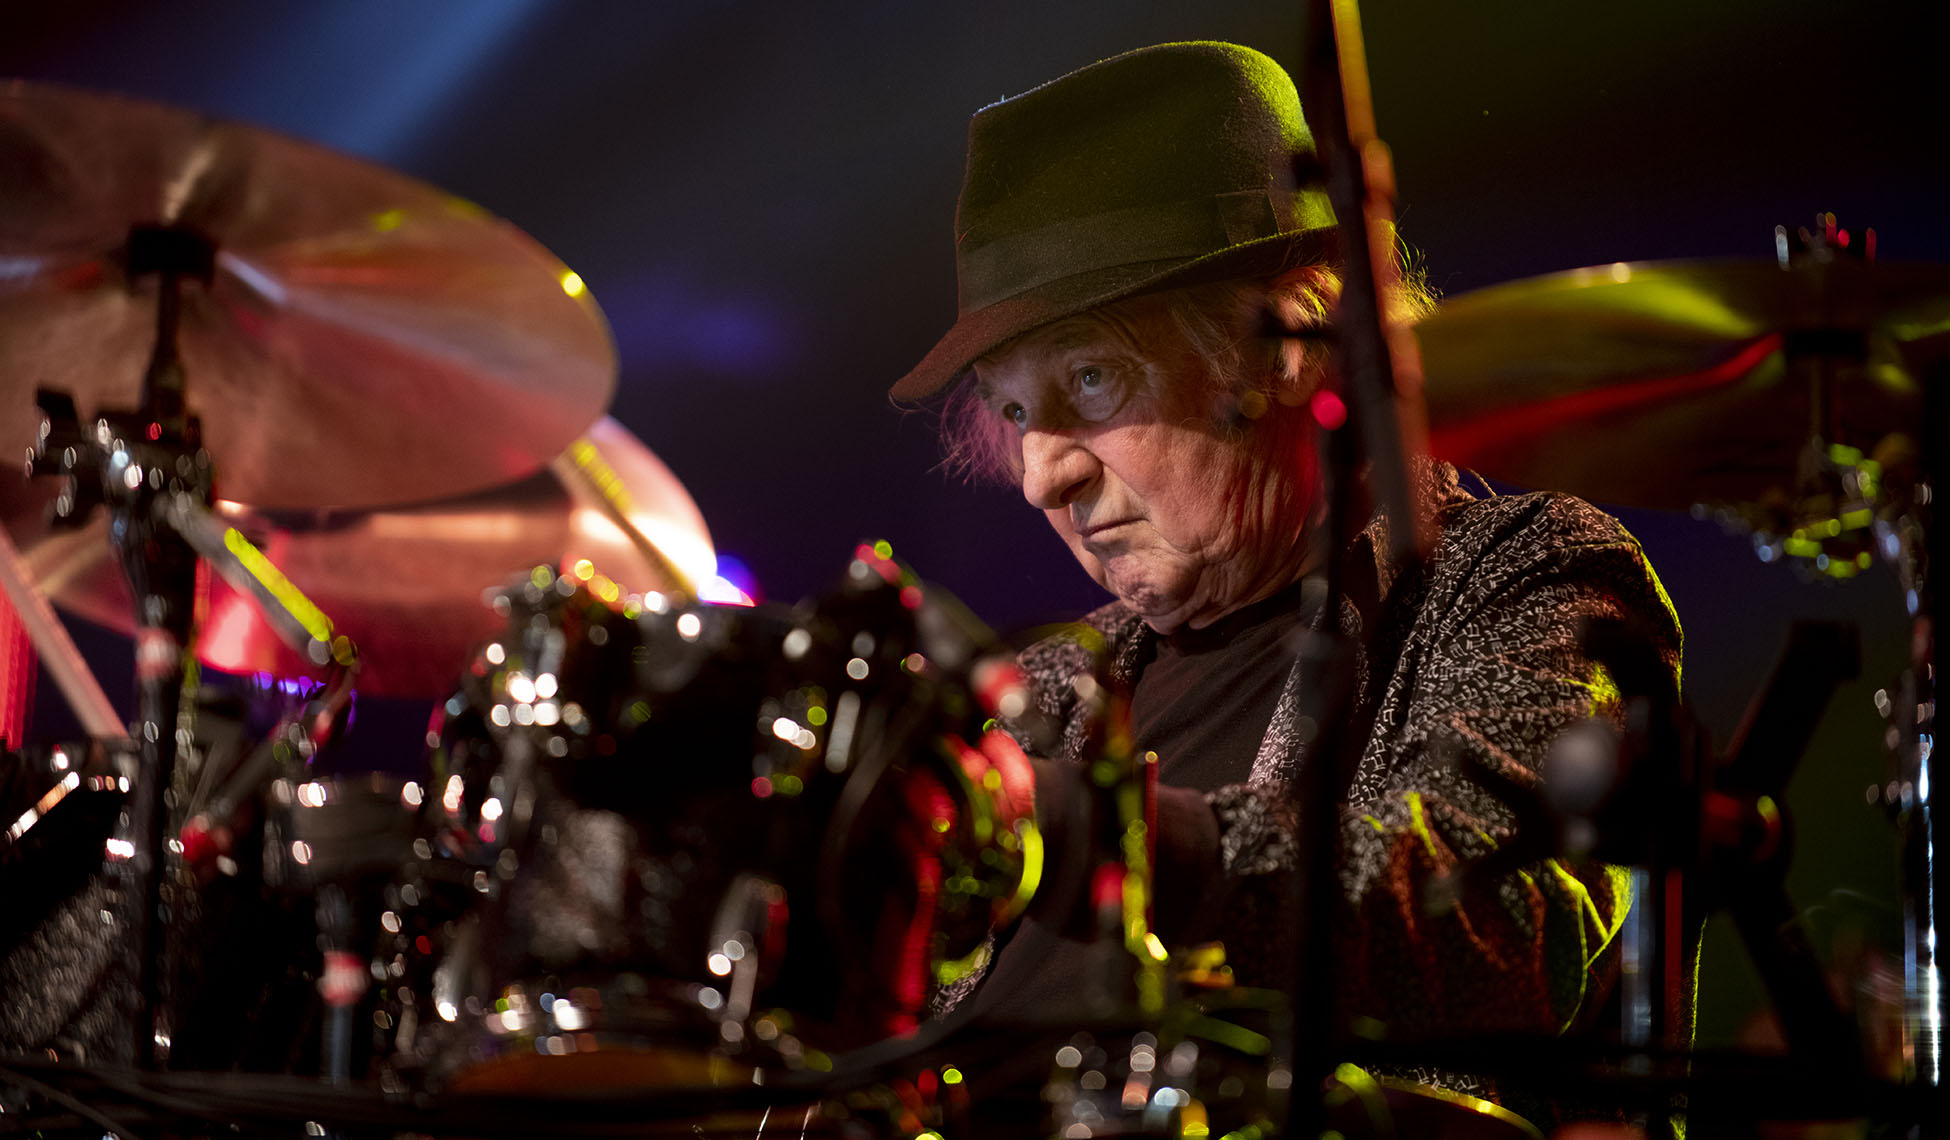 Alan White, Drummer of Yes